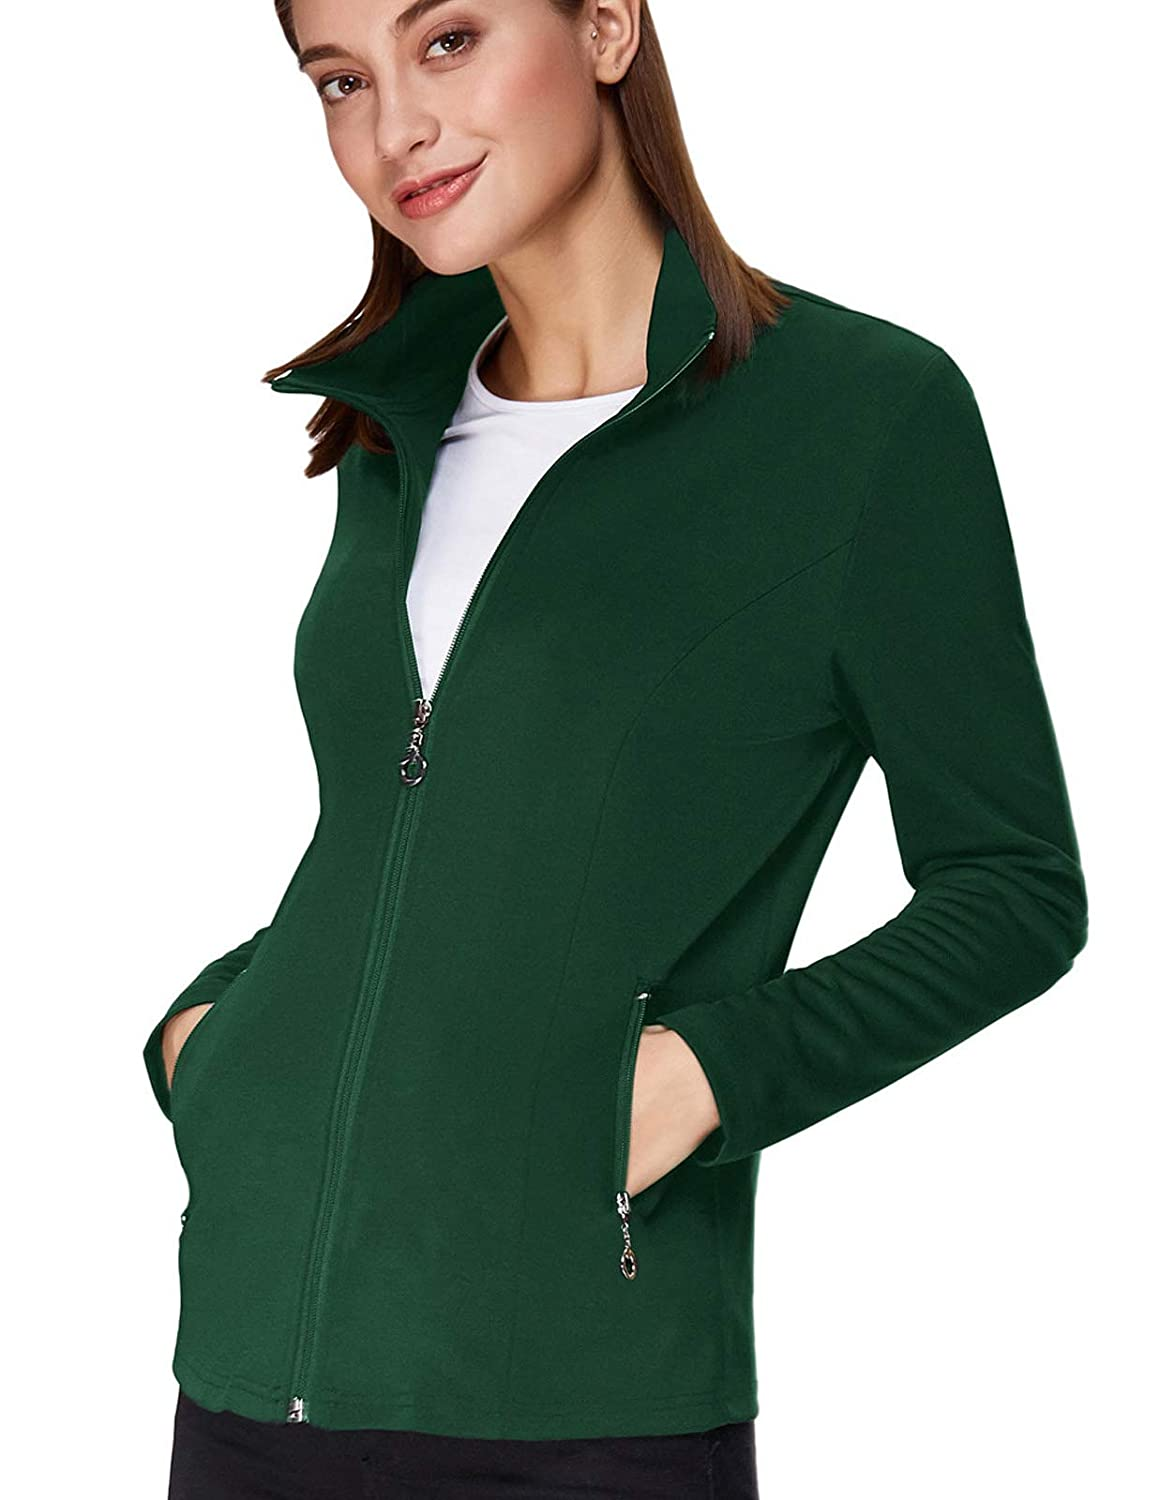 Kate Kasin Womens Stand Collar Sport Jacket Casual Lightweight Zip-up Tops Coat